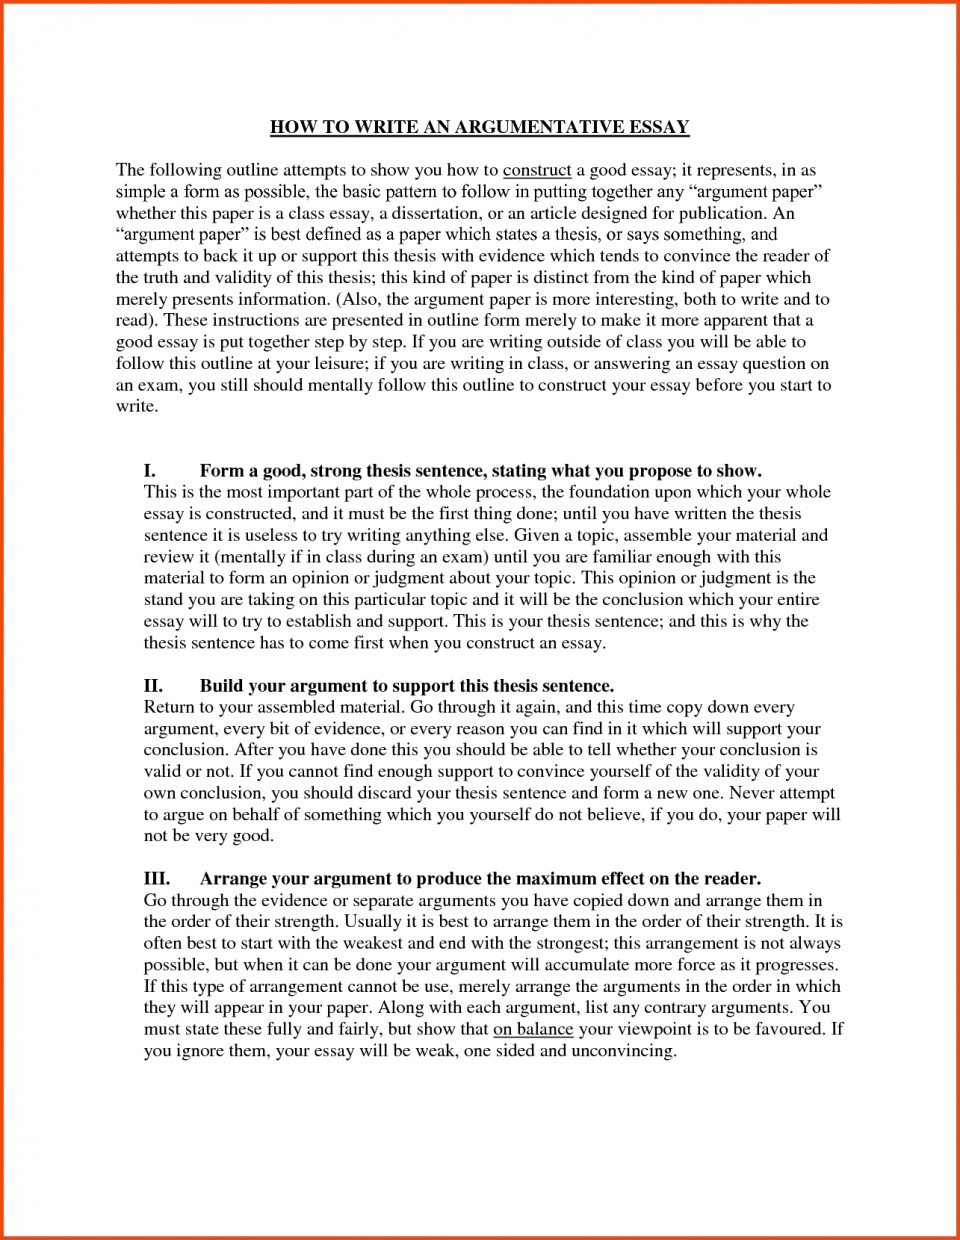 005 Essay Example How To Start An Brilliant Ideas Of Good Ways About Yourself Dissertation Nice Amazing With A Hook Quote Analysis On Book 960